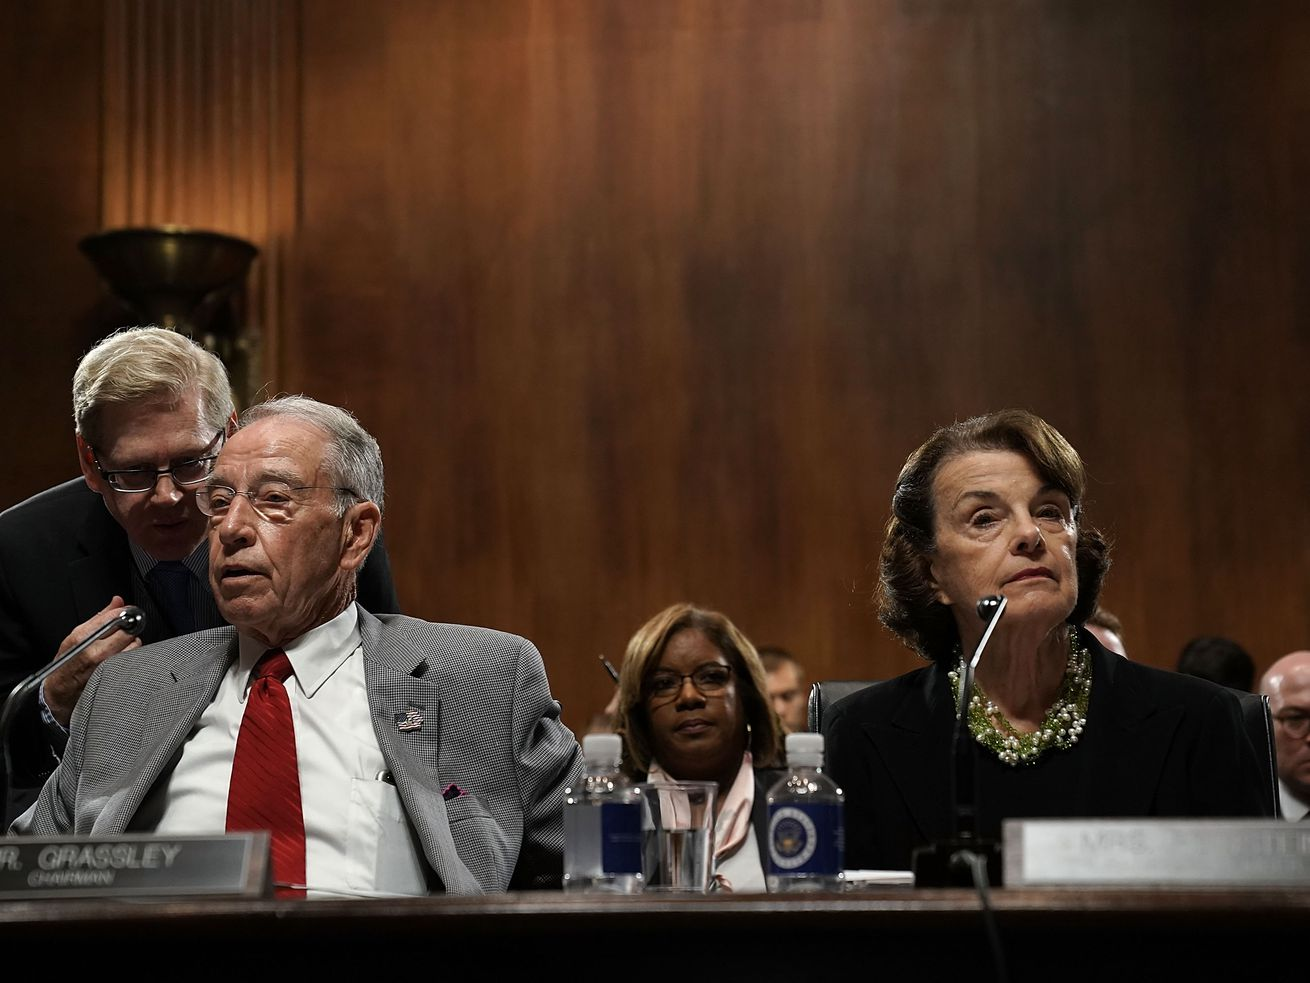 Senate Judiciary Committee Chairman Chuck Grassley and Ranking Member Dianne Feinstein at a hearing on Capitol Hill in September 2018.